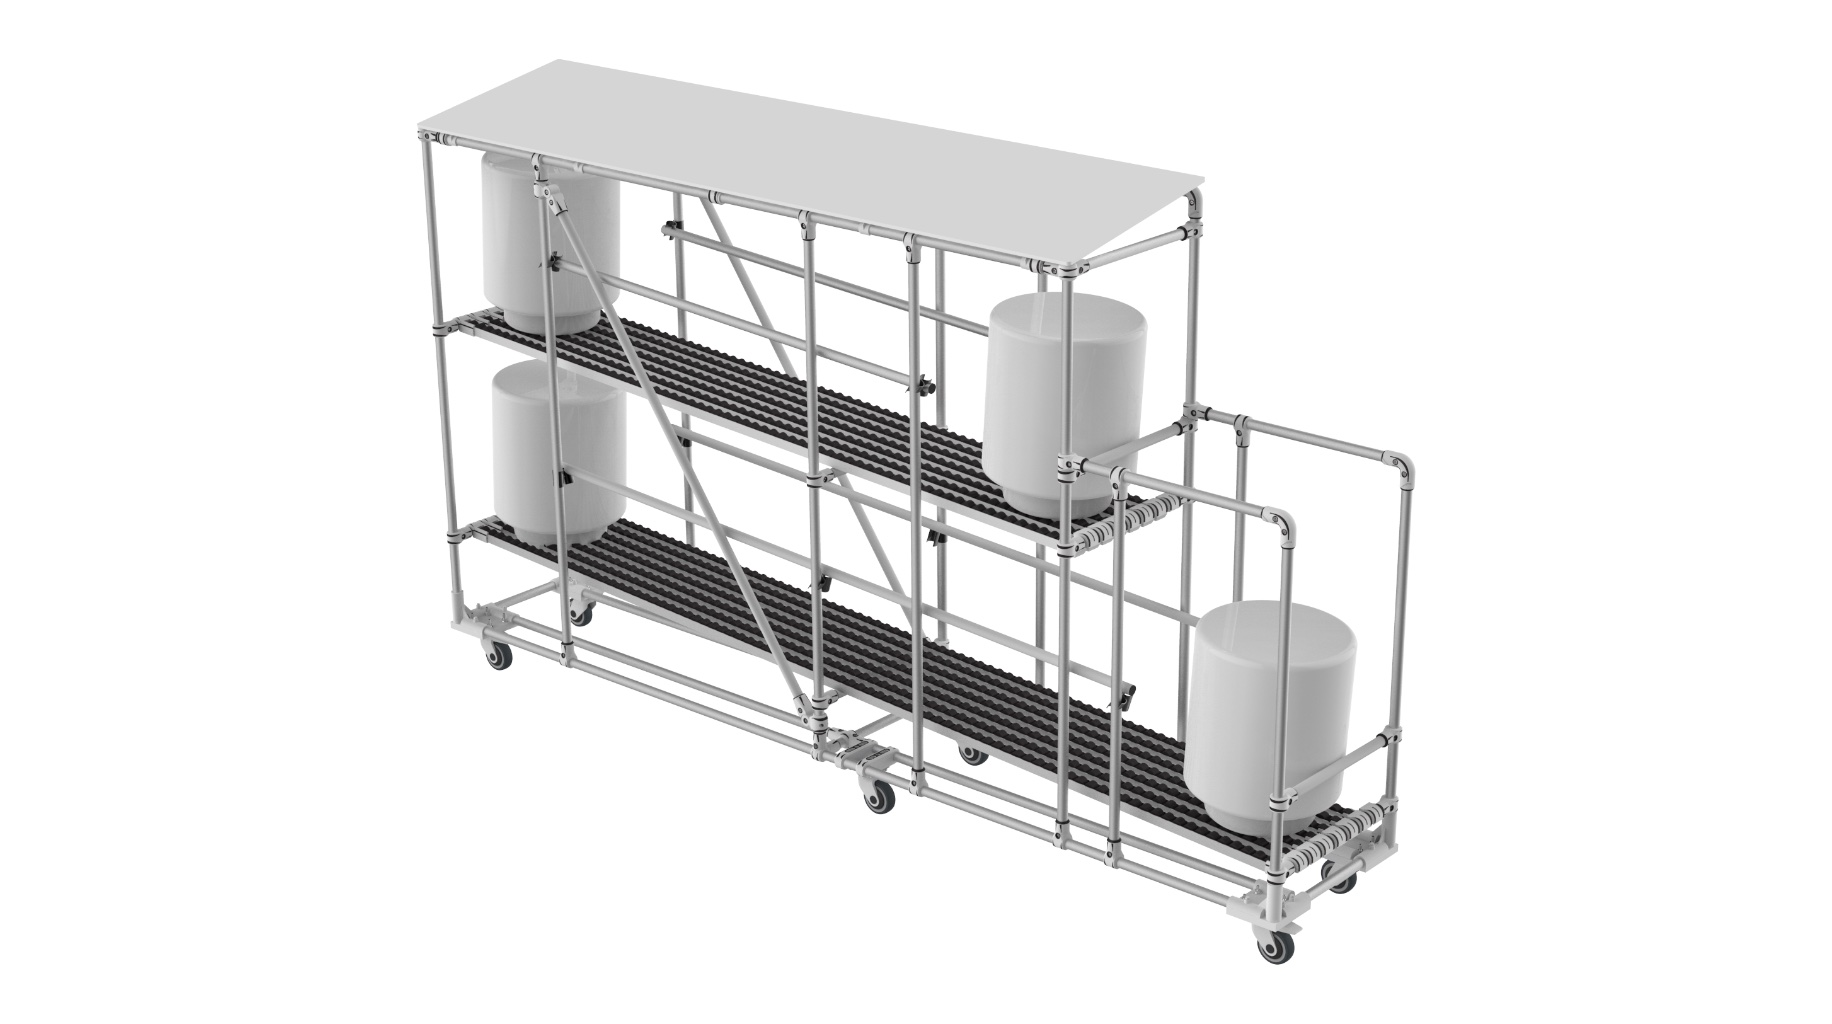 Logistic industry - Technical live storage for roll handling with FIFO function.